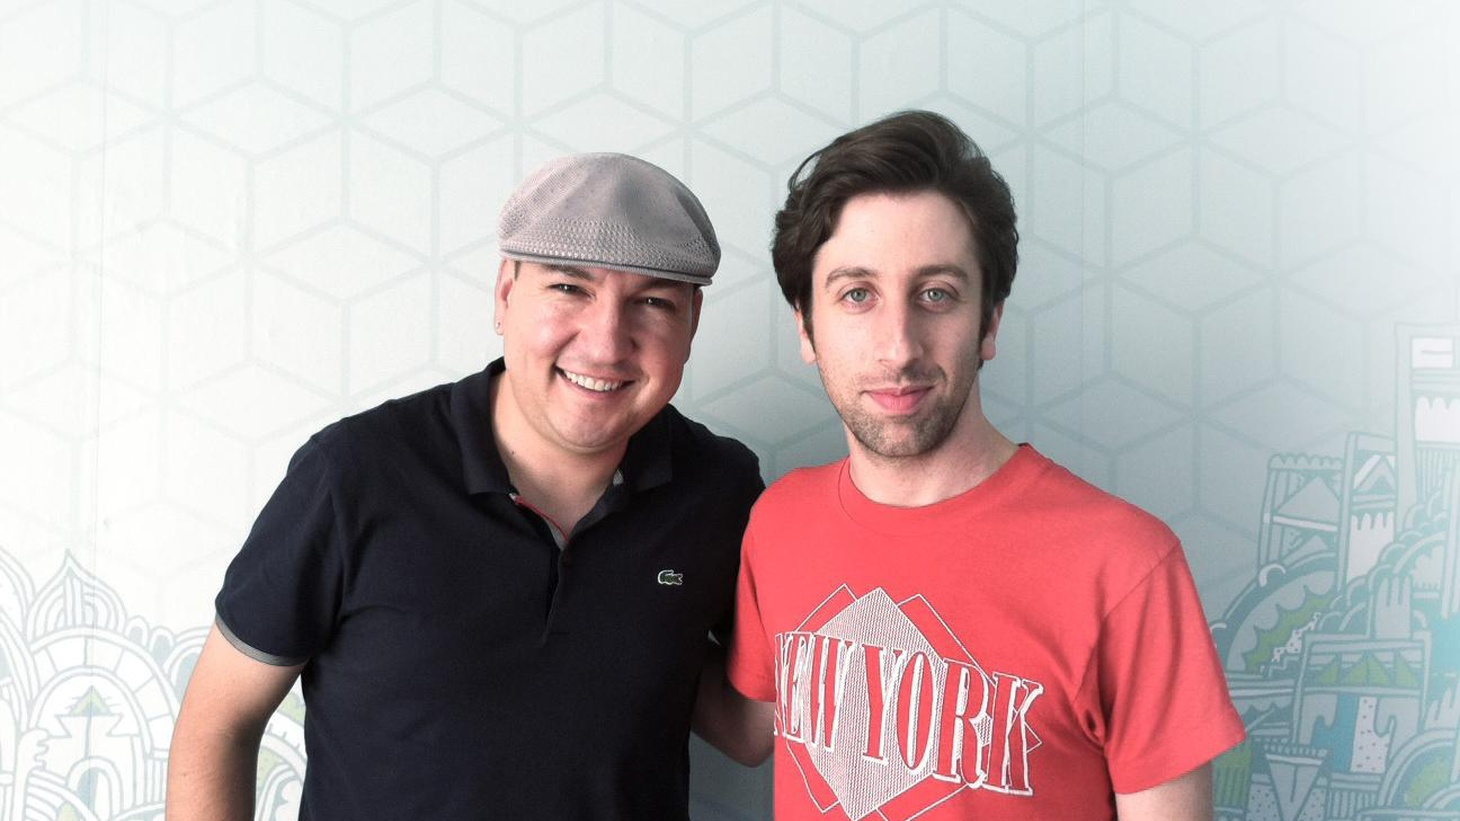 Big Bang Theory star and LA native Simon Helberg picked a theme for his Guest set – songs for driving and crying.